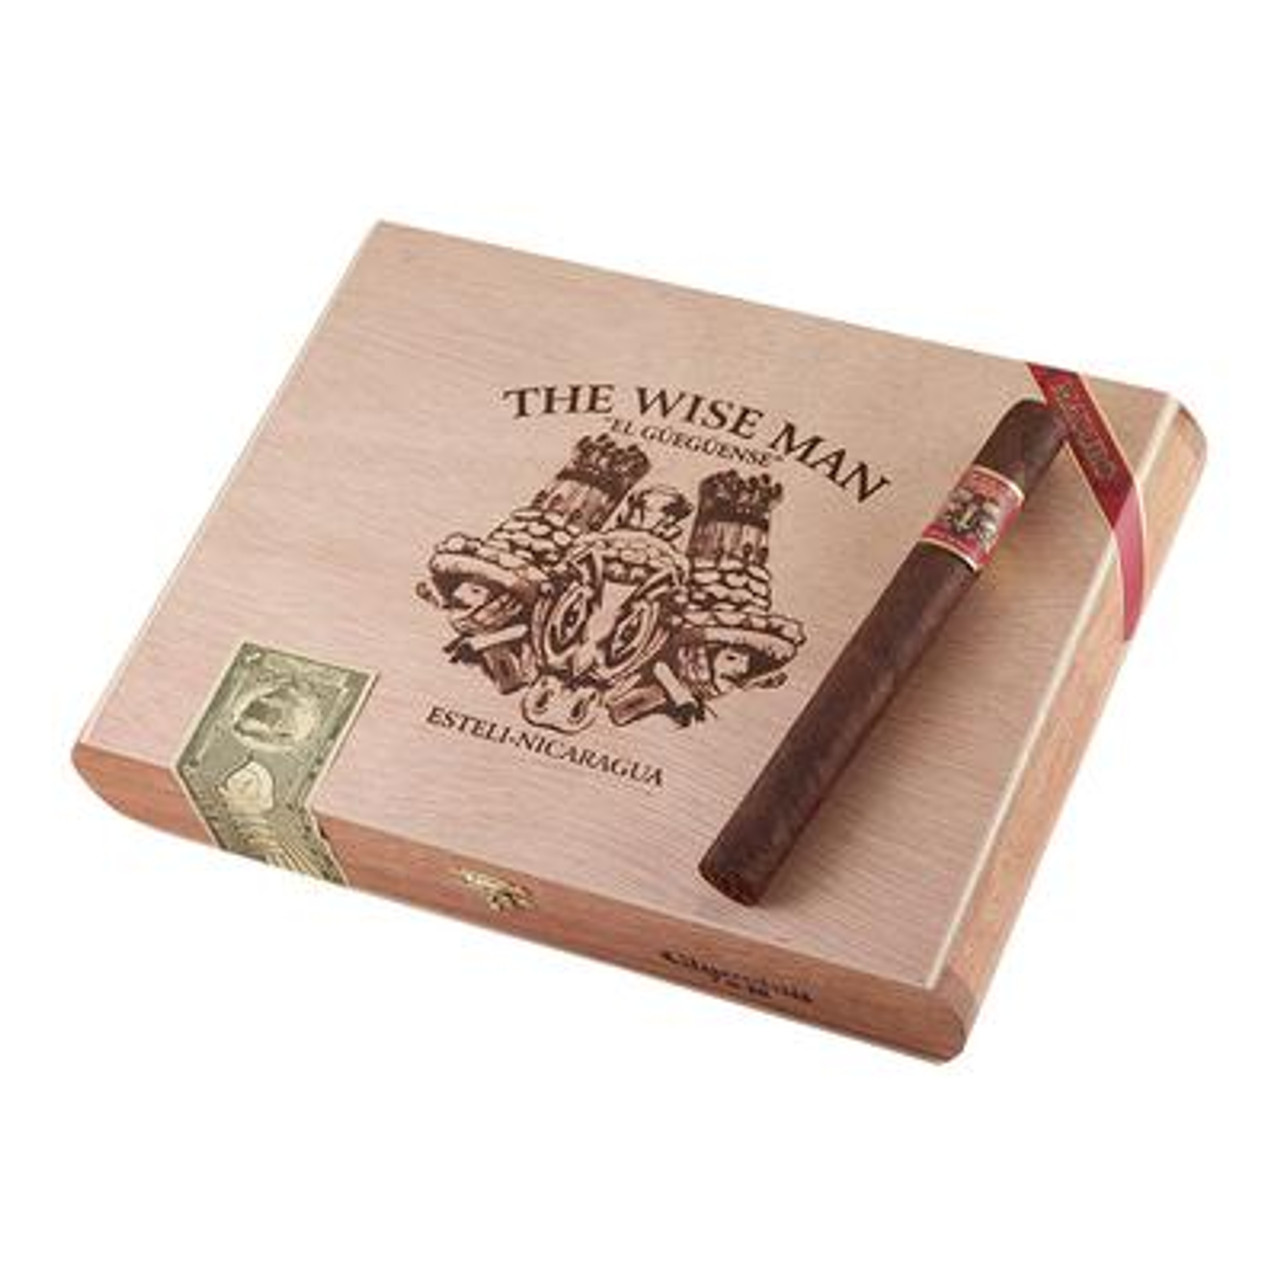 Foundation The Wise Man Maduro Churchill Cigars - 7 x 48 (Box of 25)